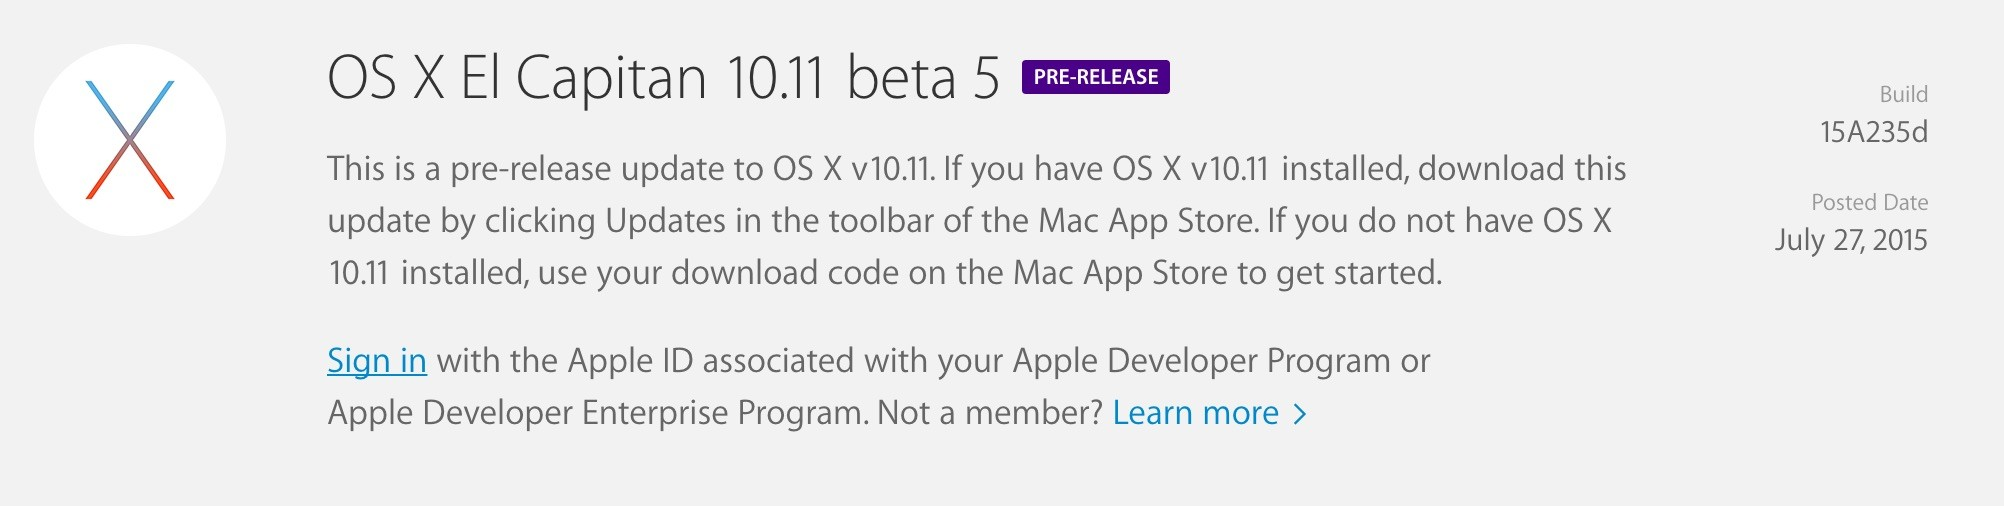 OS-X-El-Capitan-10-11-beta5-Hero